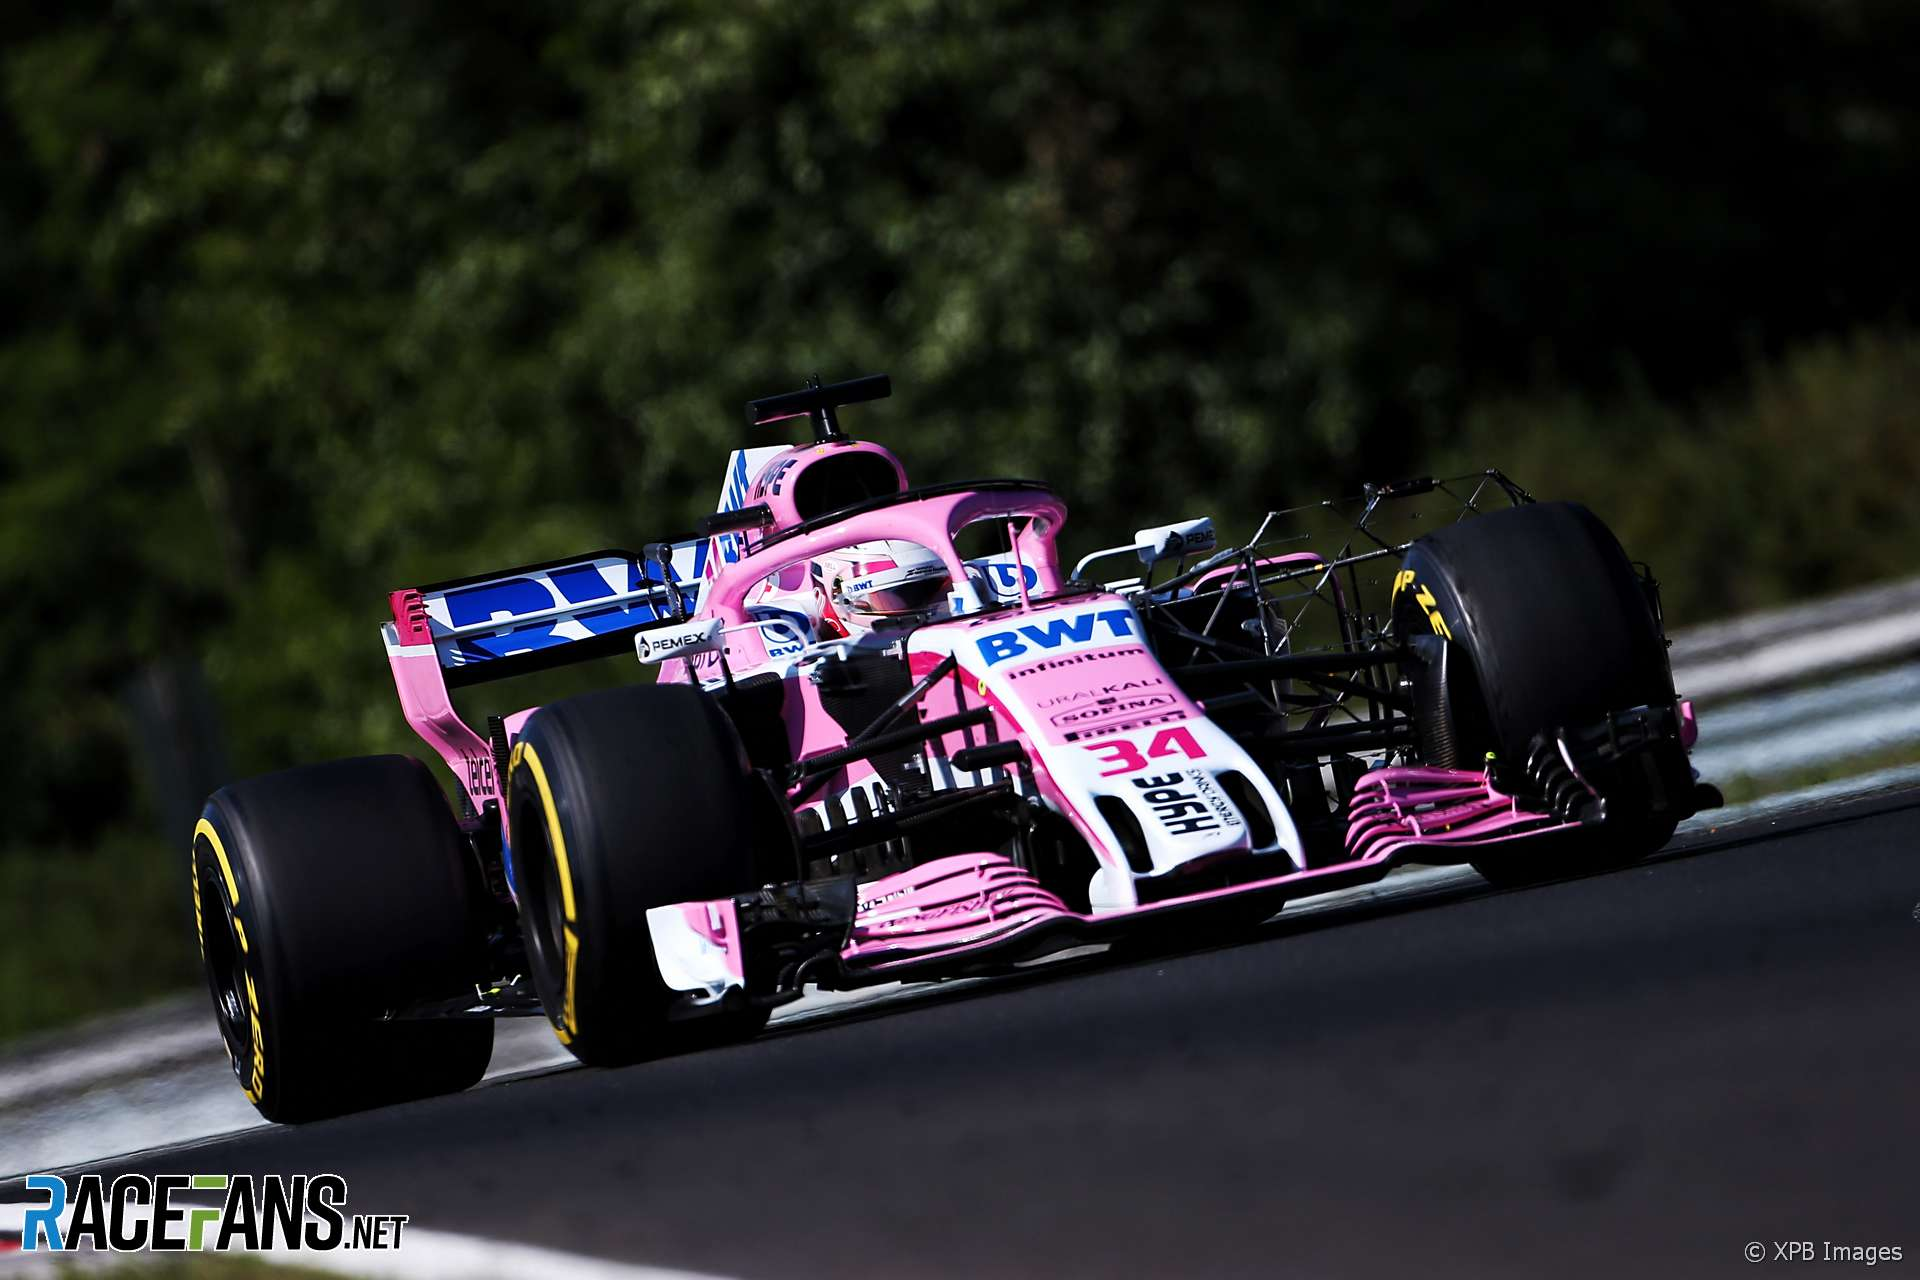 Nicholas Latifi, Force India, Hungaroring